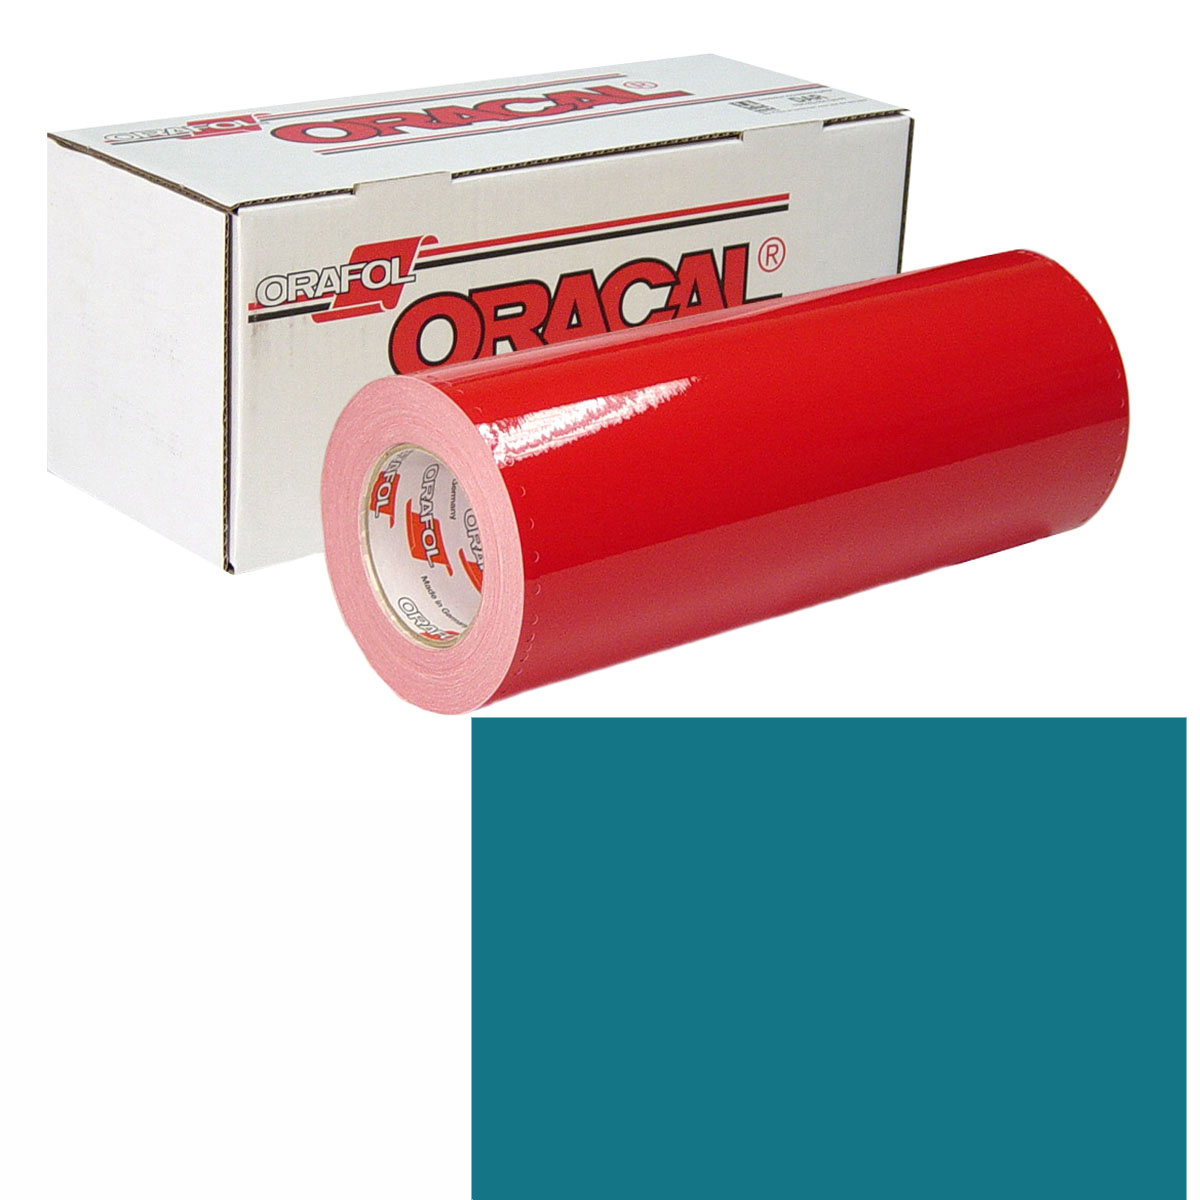 ORACAL 951M Unp 48in X 50yd 199 Turquoise Met